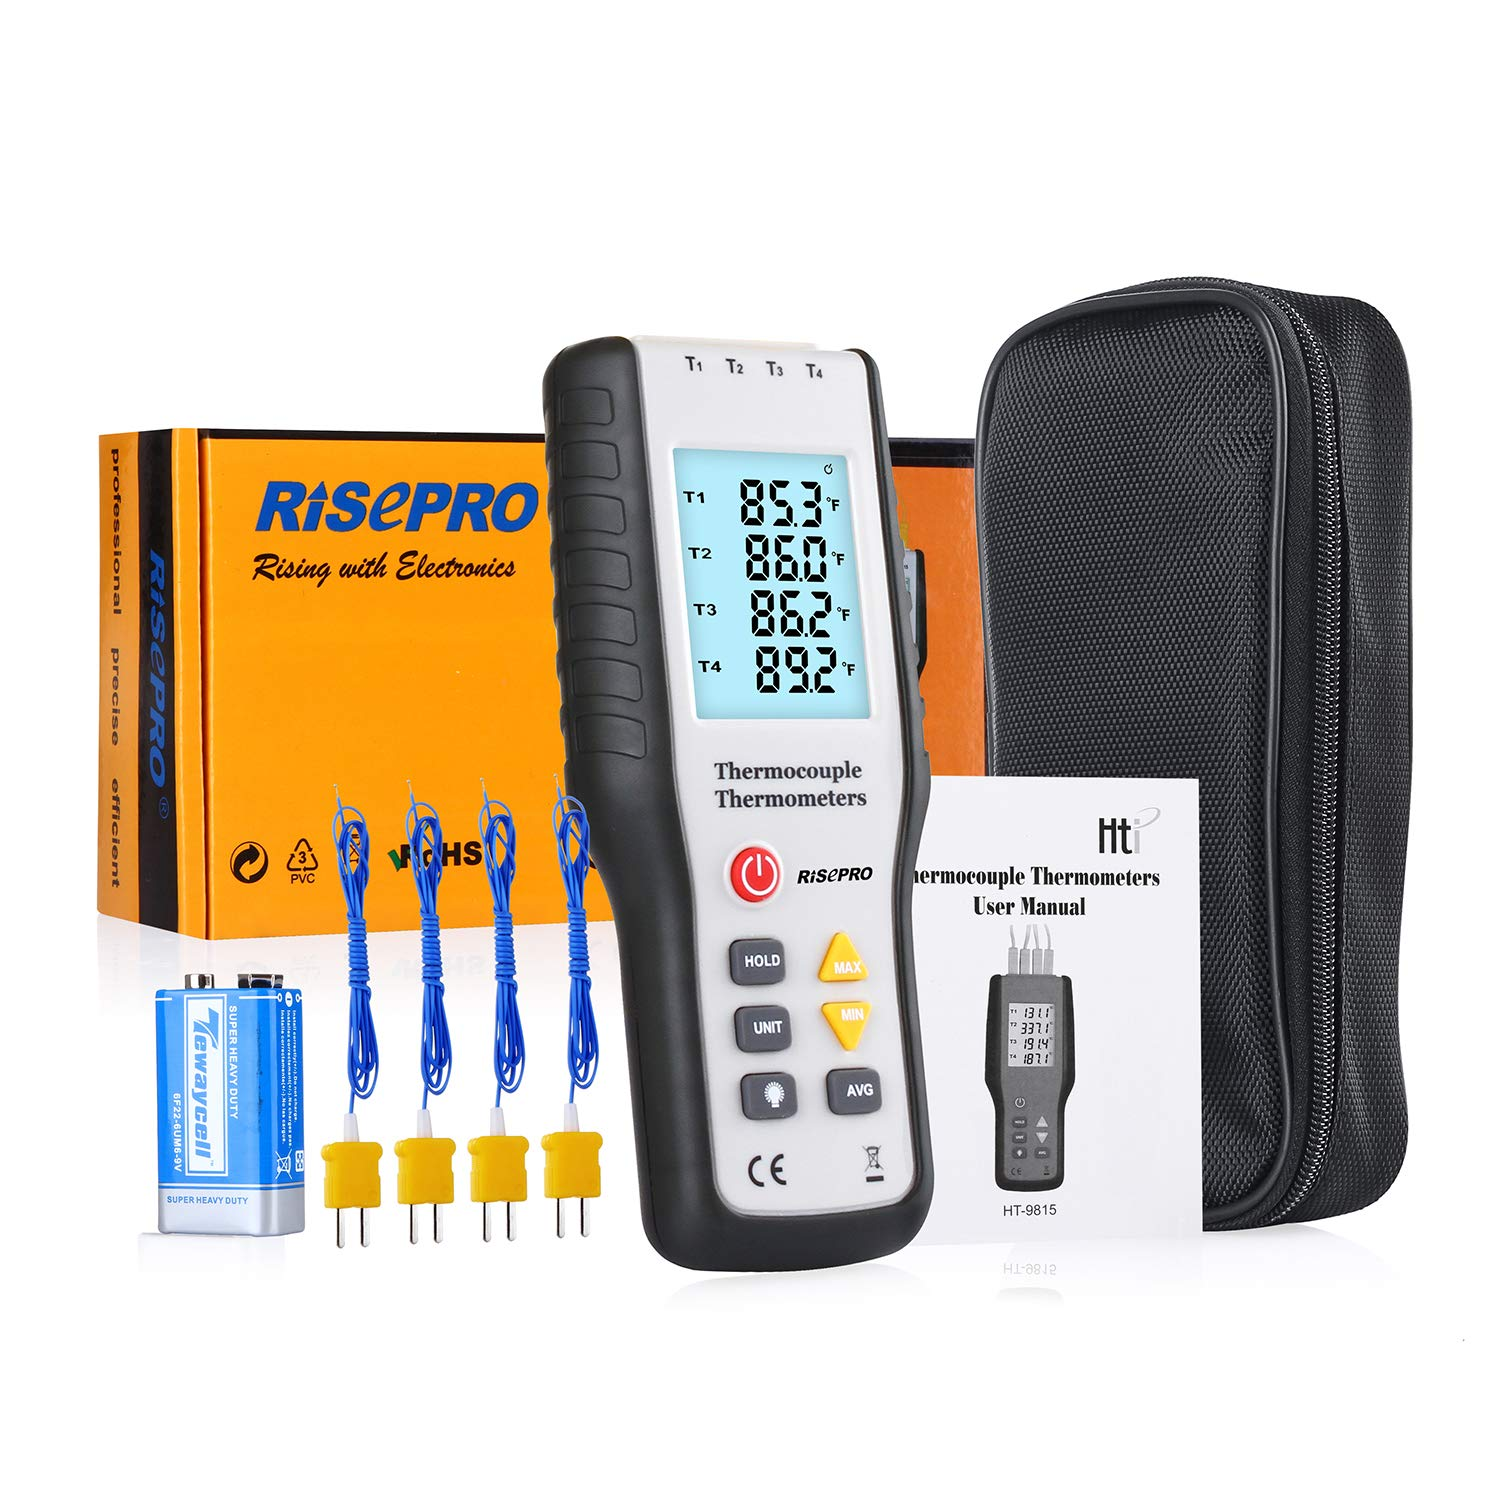 Thermocouple Thermometer, RISEPRO 4 Channel K Type Digital Thermometer Thermocouple -200~1372°C/2501°F Sensor HT-9815: Amazon.com: Industrial & Scientific